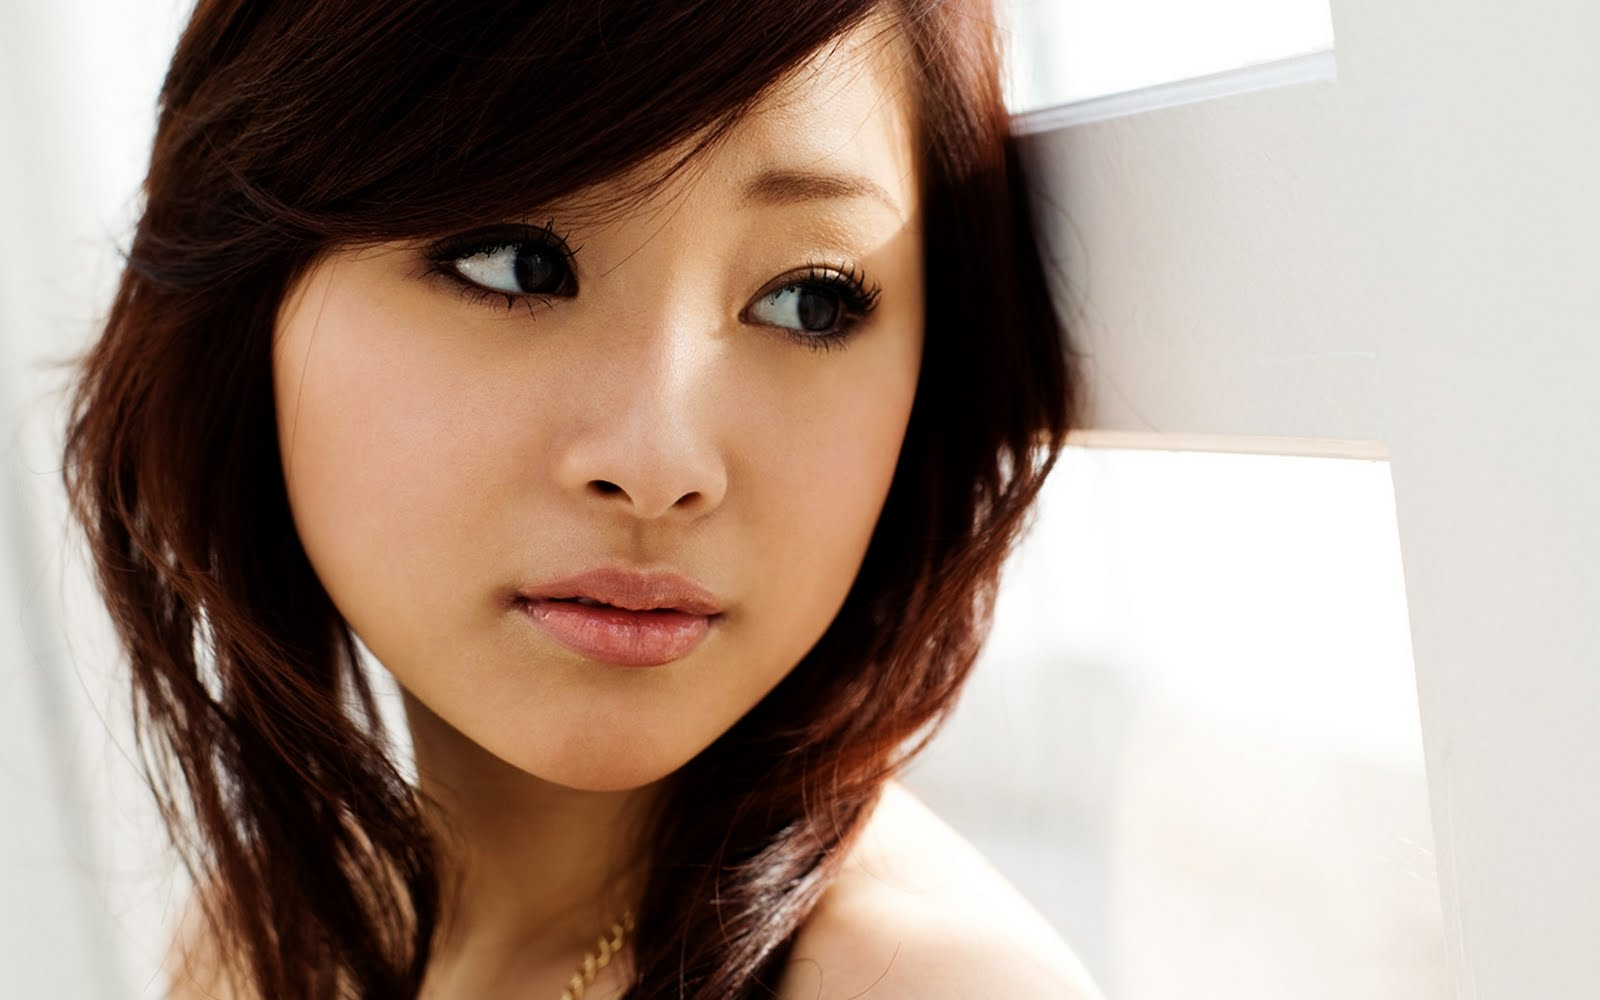 beautiful face wallpapers 43 wallpapers u2013 adorable wallpapers